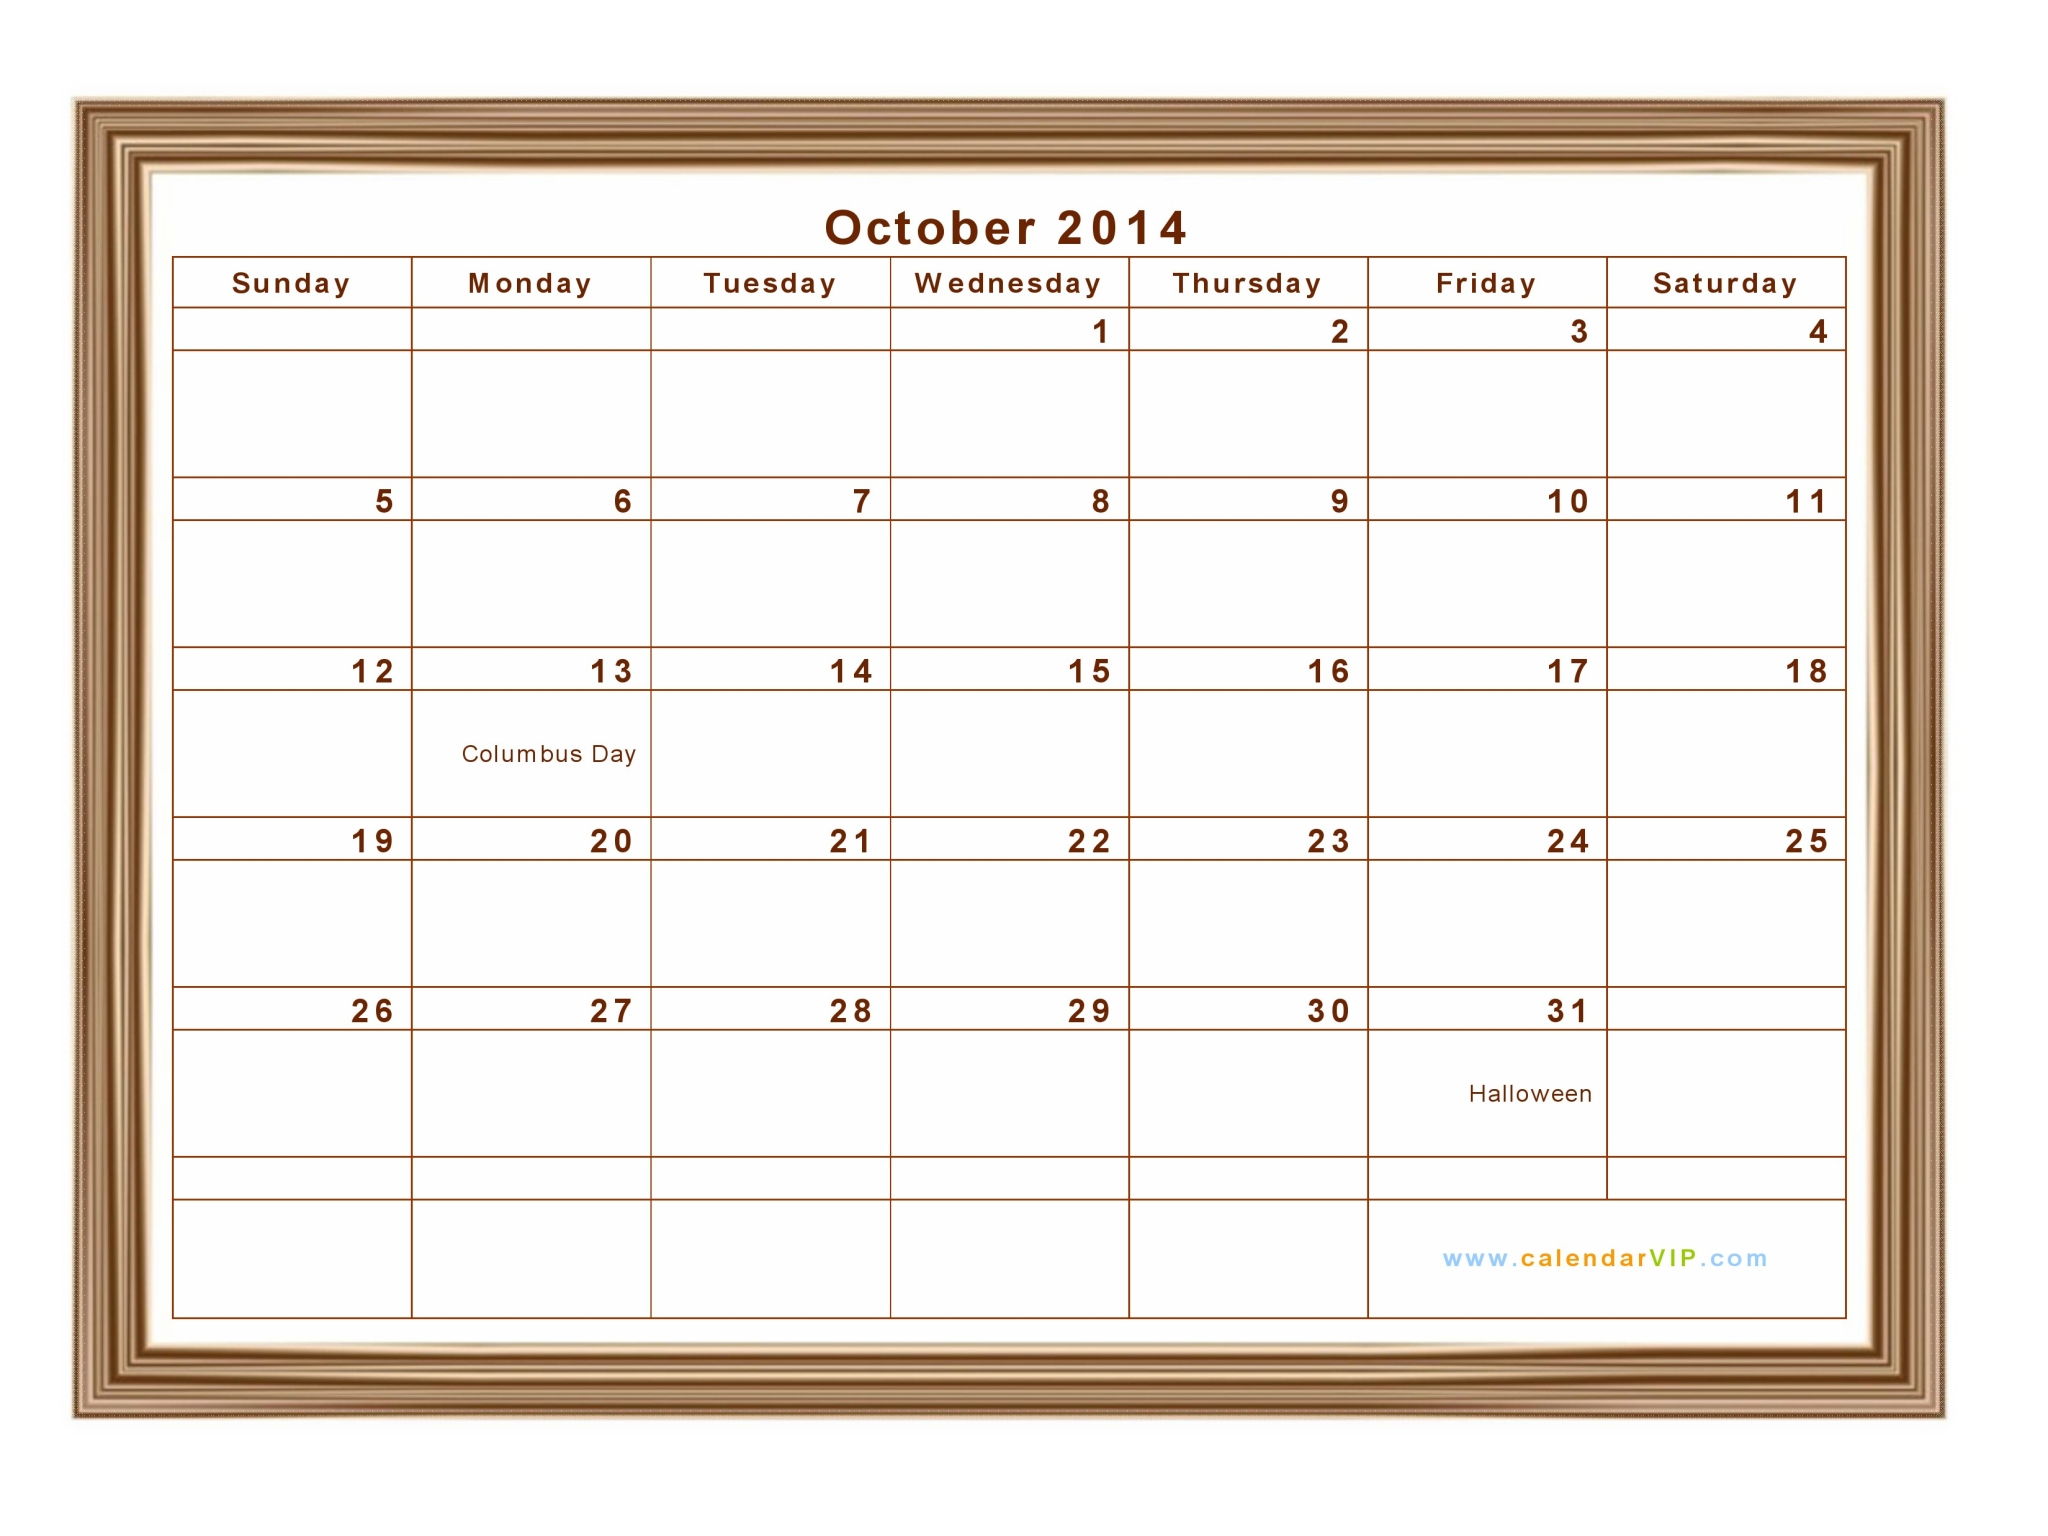 Calendar Template with Notes for Everyday - Landscape